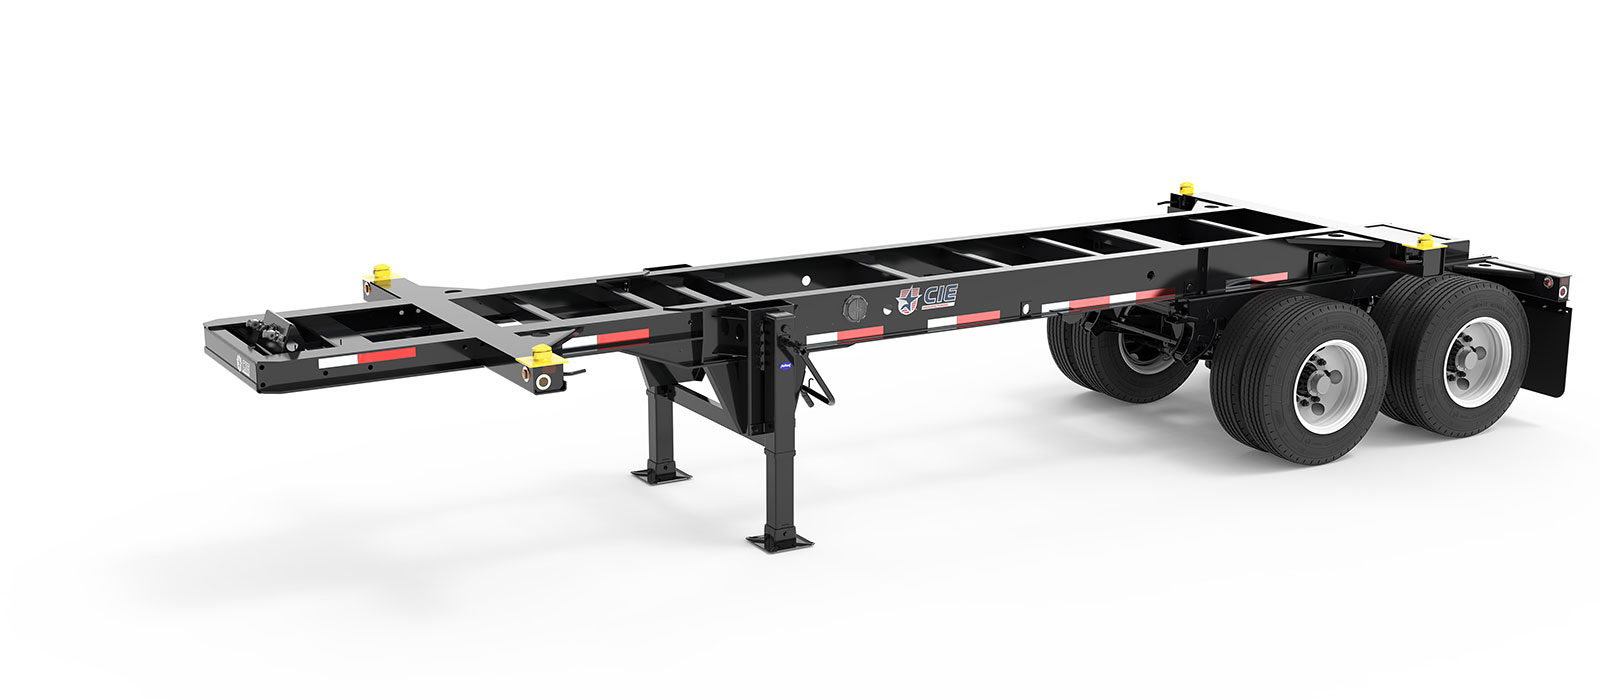 23.5' Tandem Slider Container Chassis Angle View Final